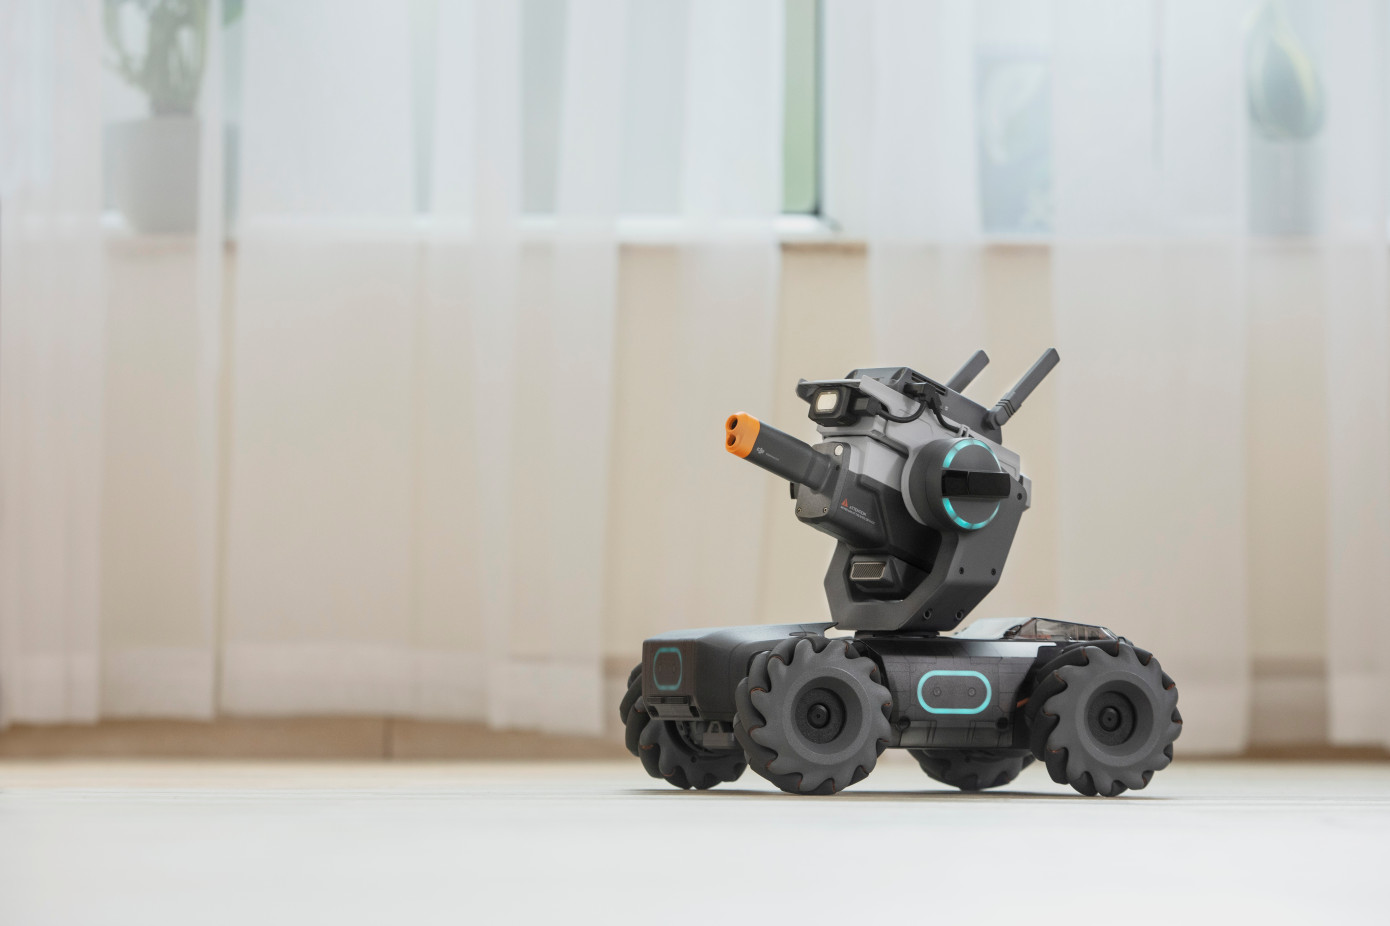 DJI gets into the Robots battle. - By Aerondrone, The 14th of June 2019